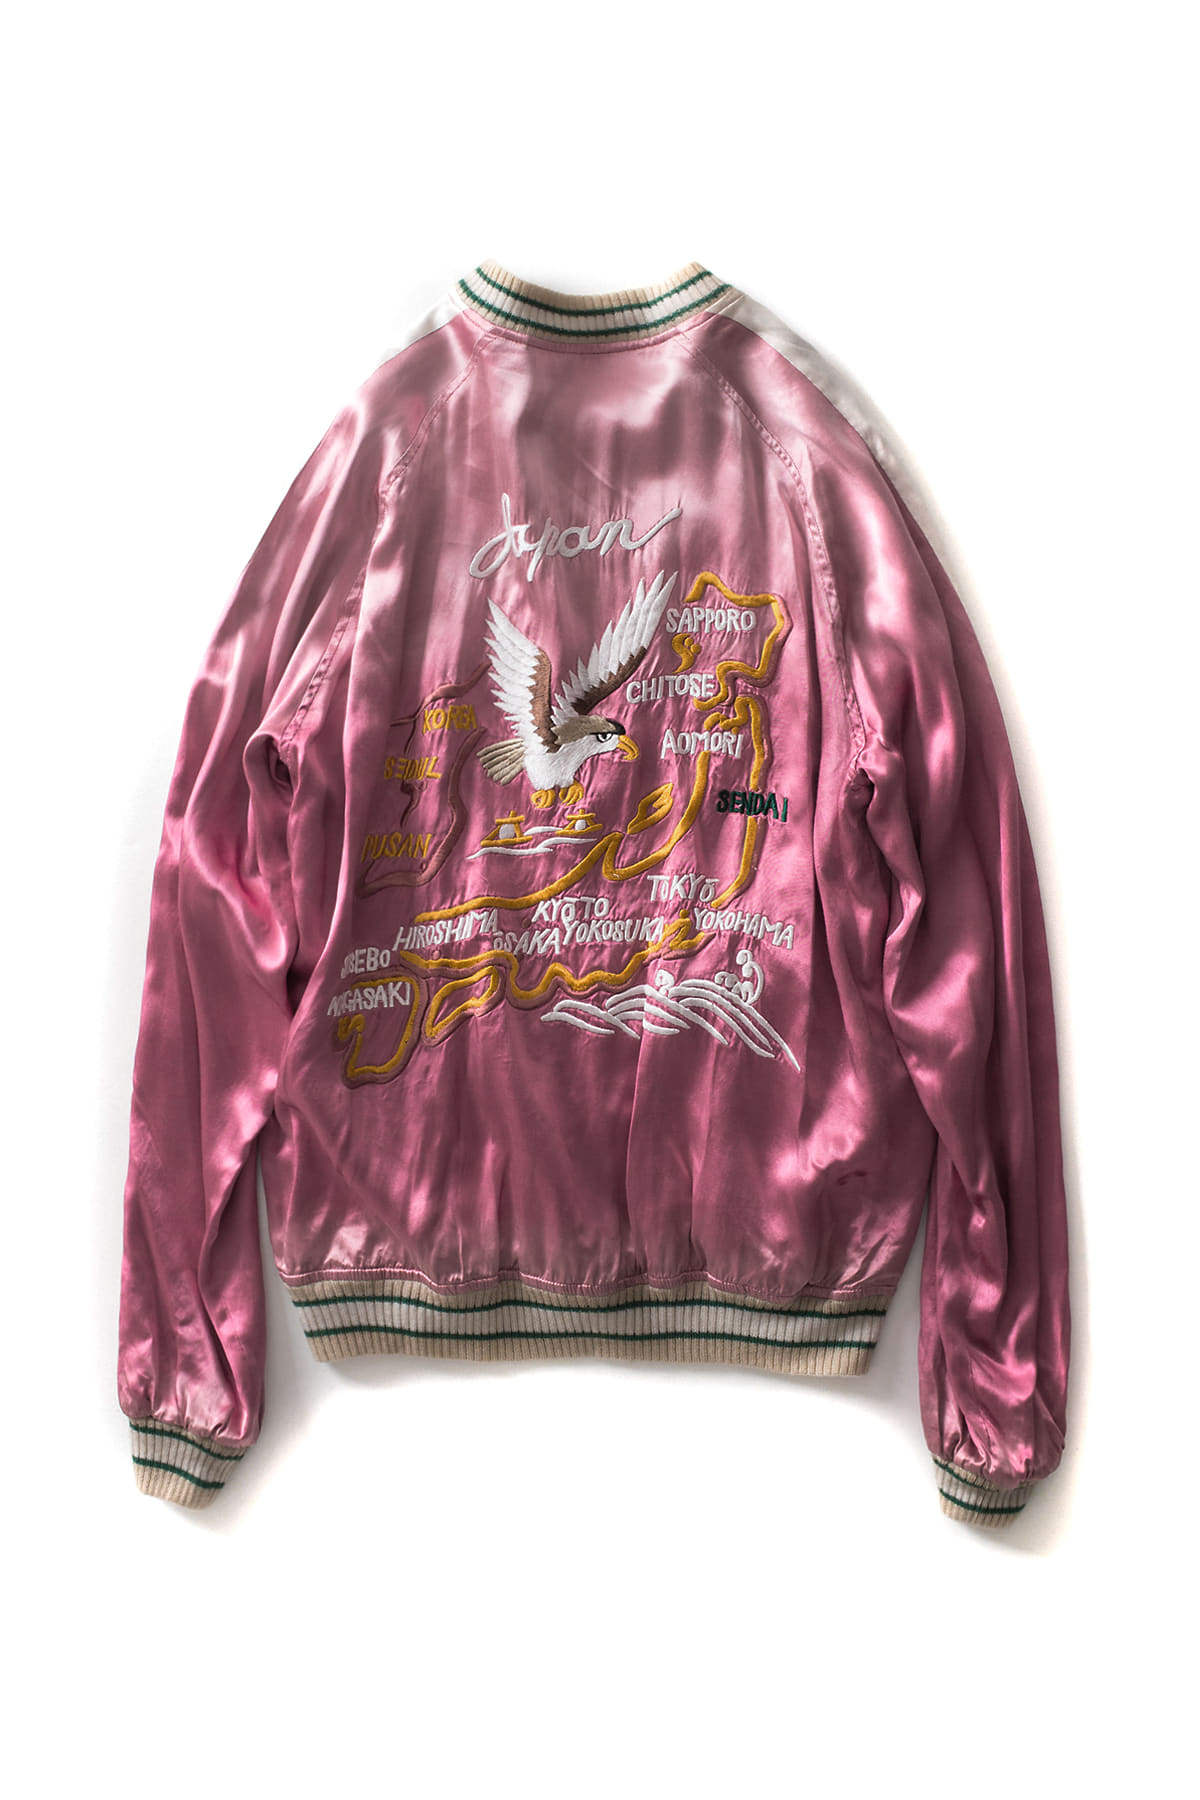 STAMMBAUM : Souvenir Jacket Japan (Pink x Off White)